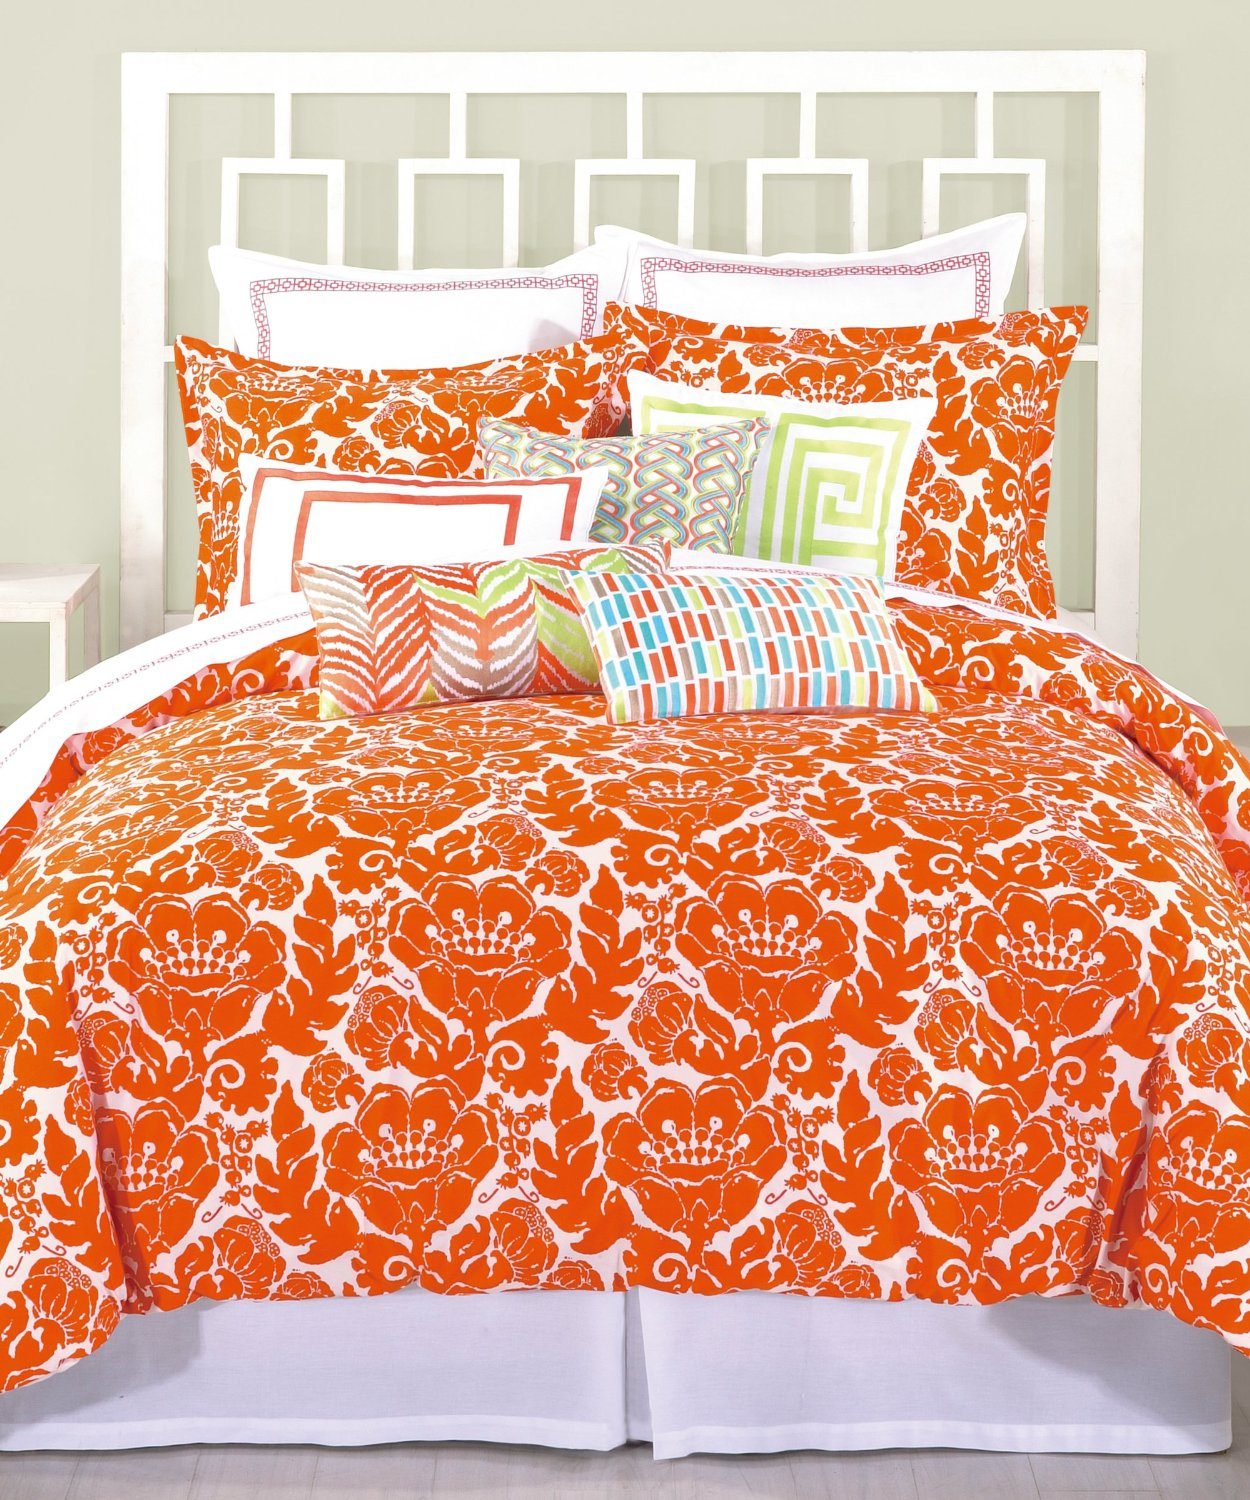 Rooms To Go Bedroom Sets Queen 10 Fun Bright Orange Comforters And Bedding Sets